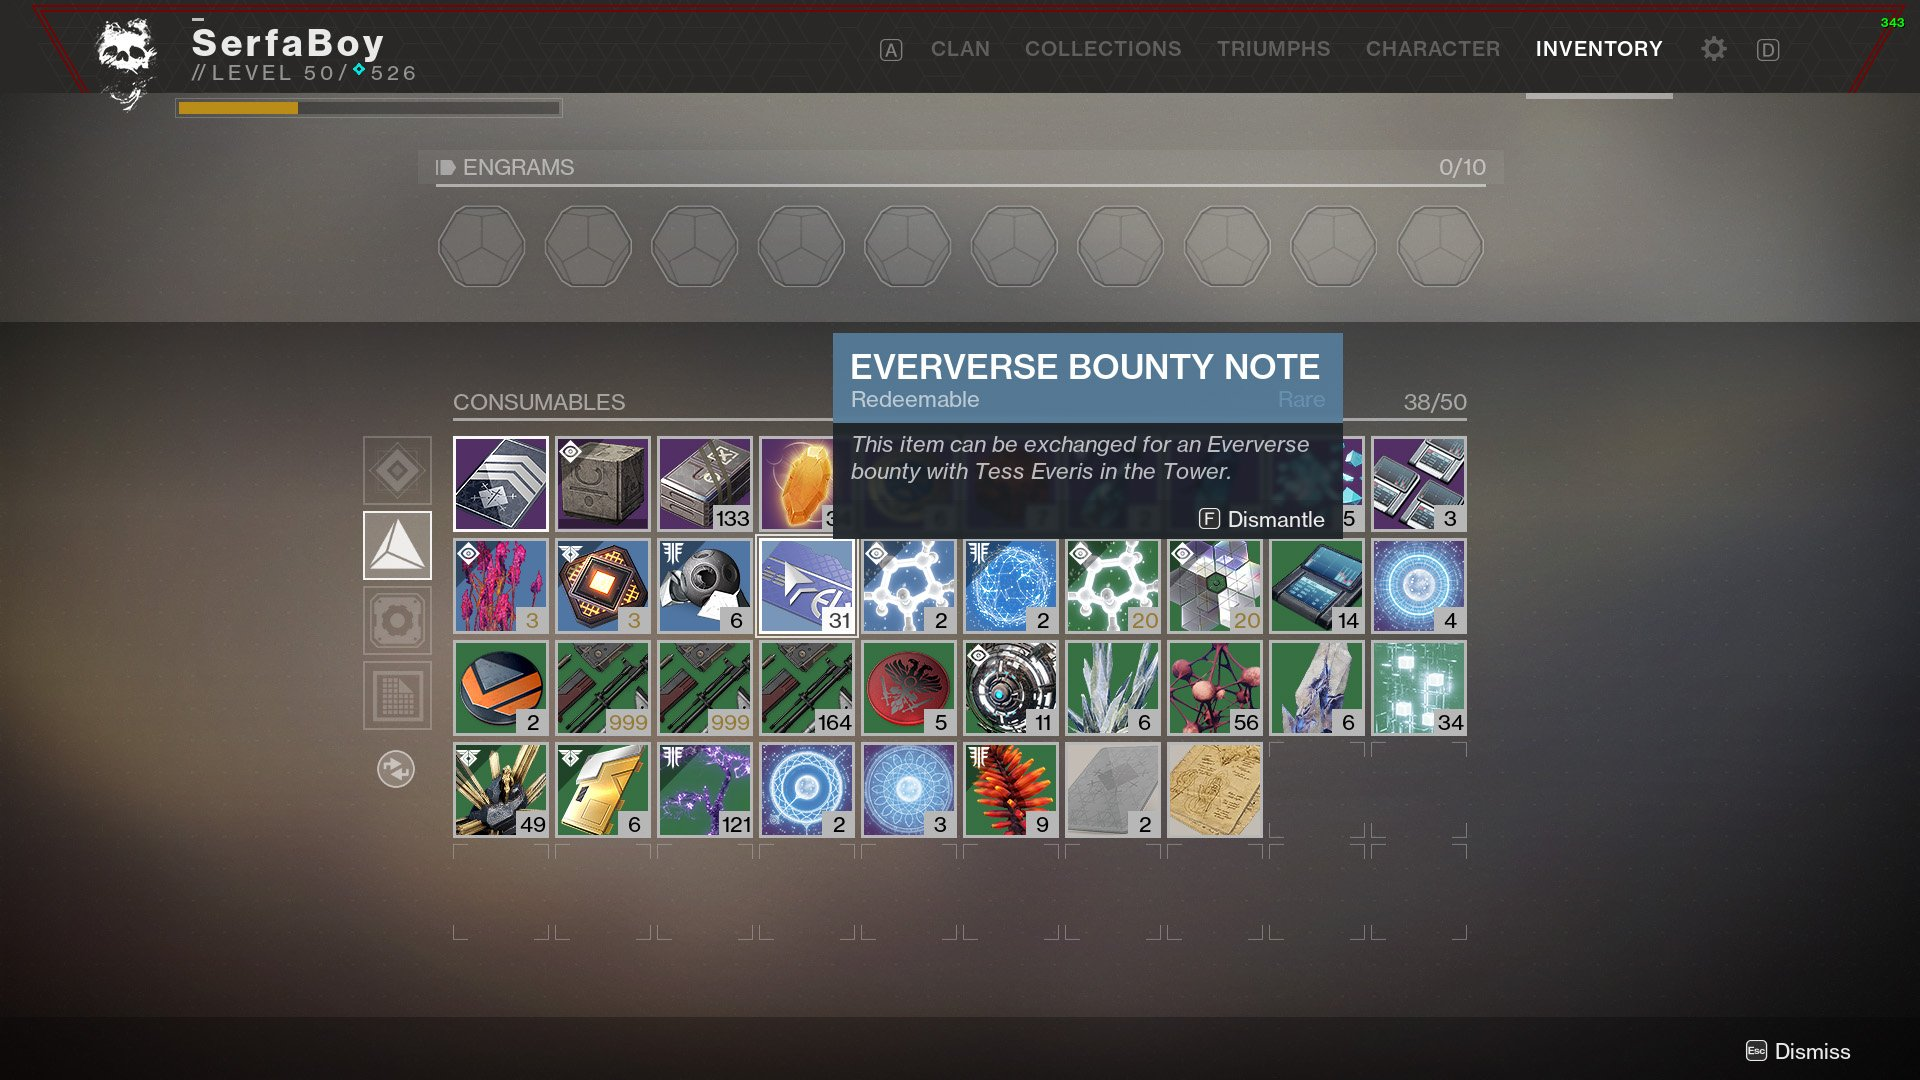 How to get Eververse Bounty Notes in Destiny 2 | Shacknews